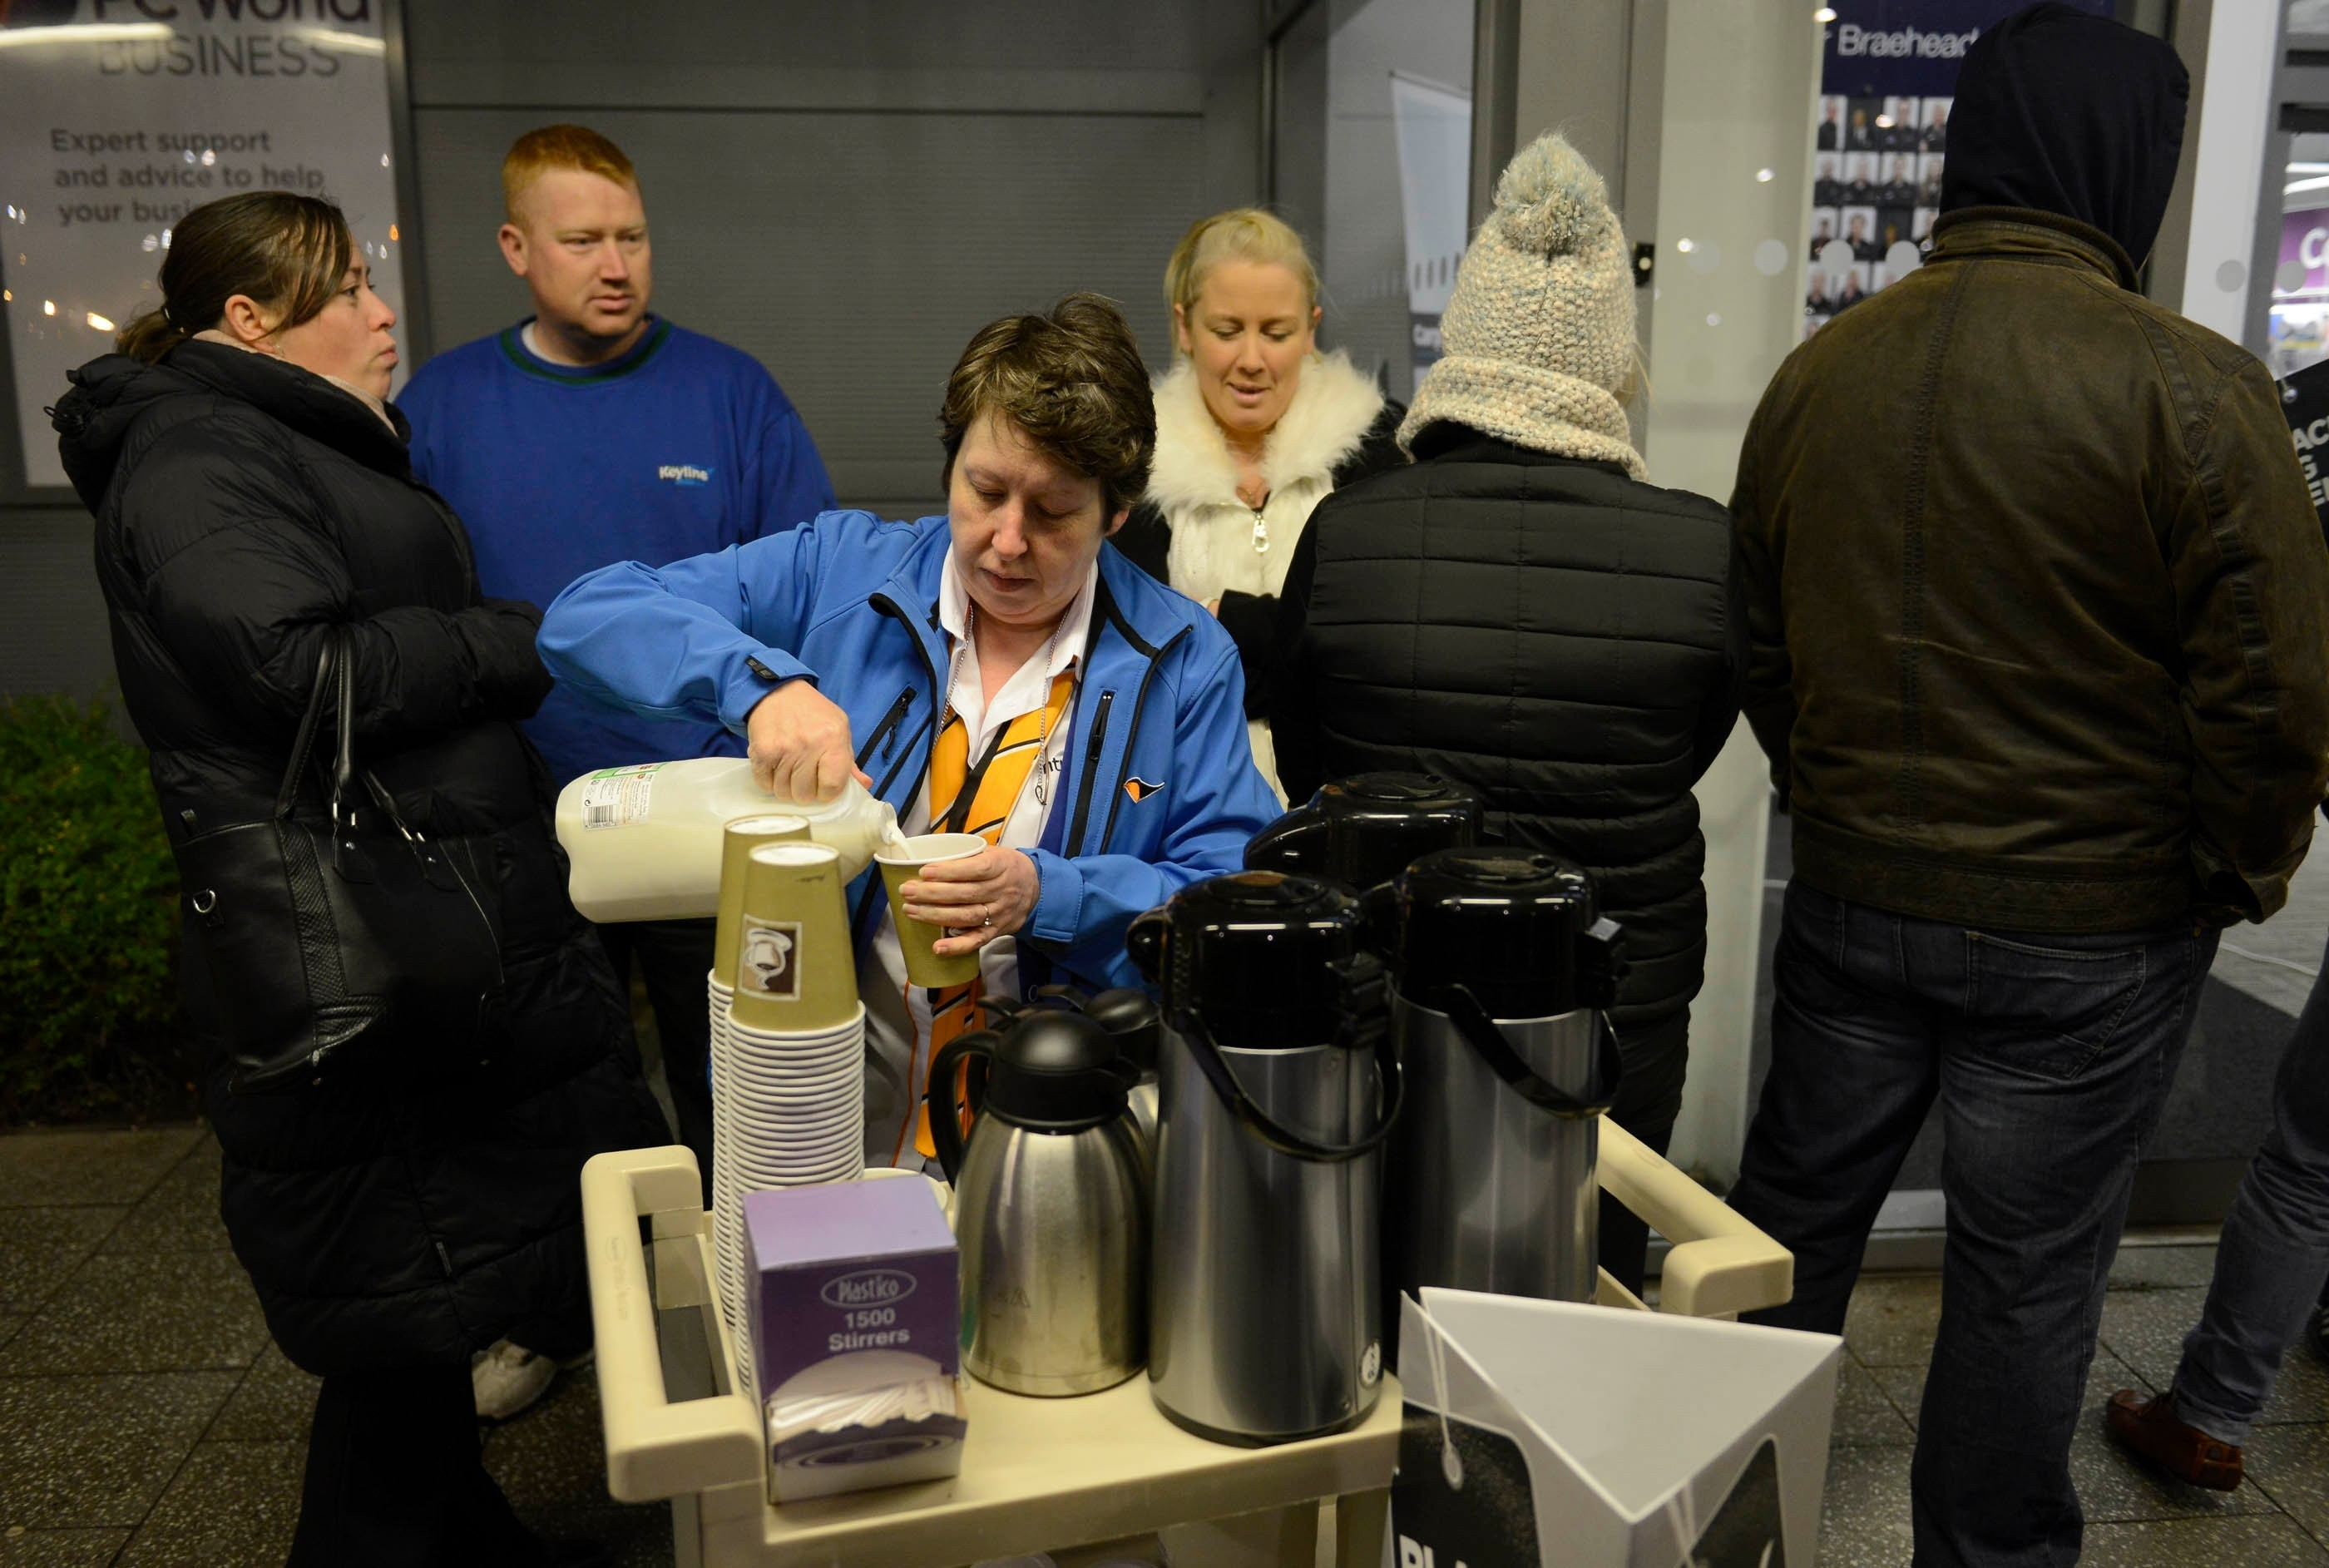 Small numbers of early morning shoppers get coffee as they get ready to enter Currys PC World, intu Braehead, Glasgow, at 6am for Black Friday sales, November 27, 2015. Large crowds did not materialise despite the bargains.